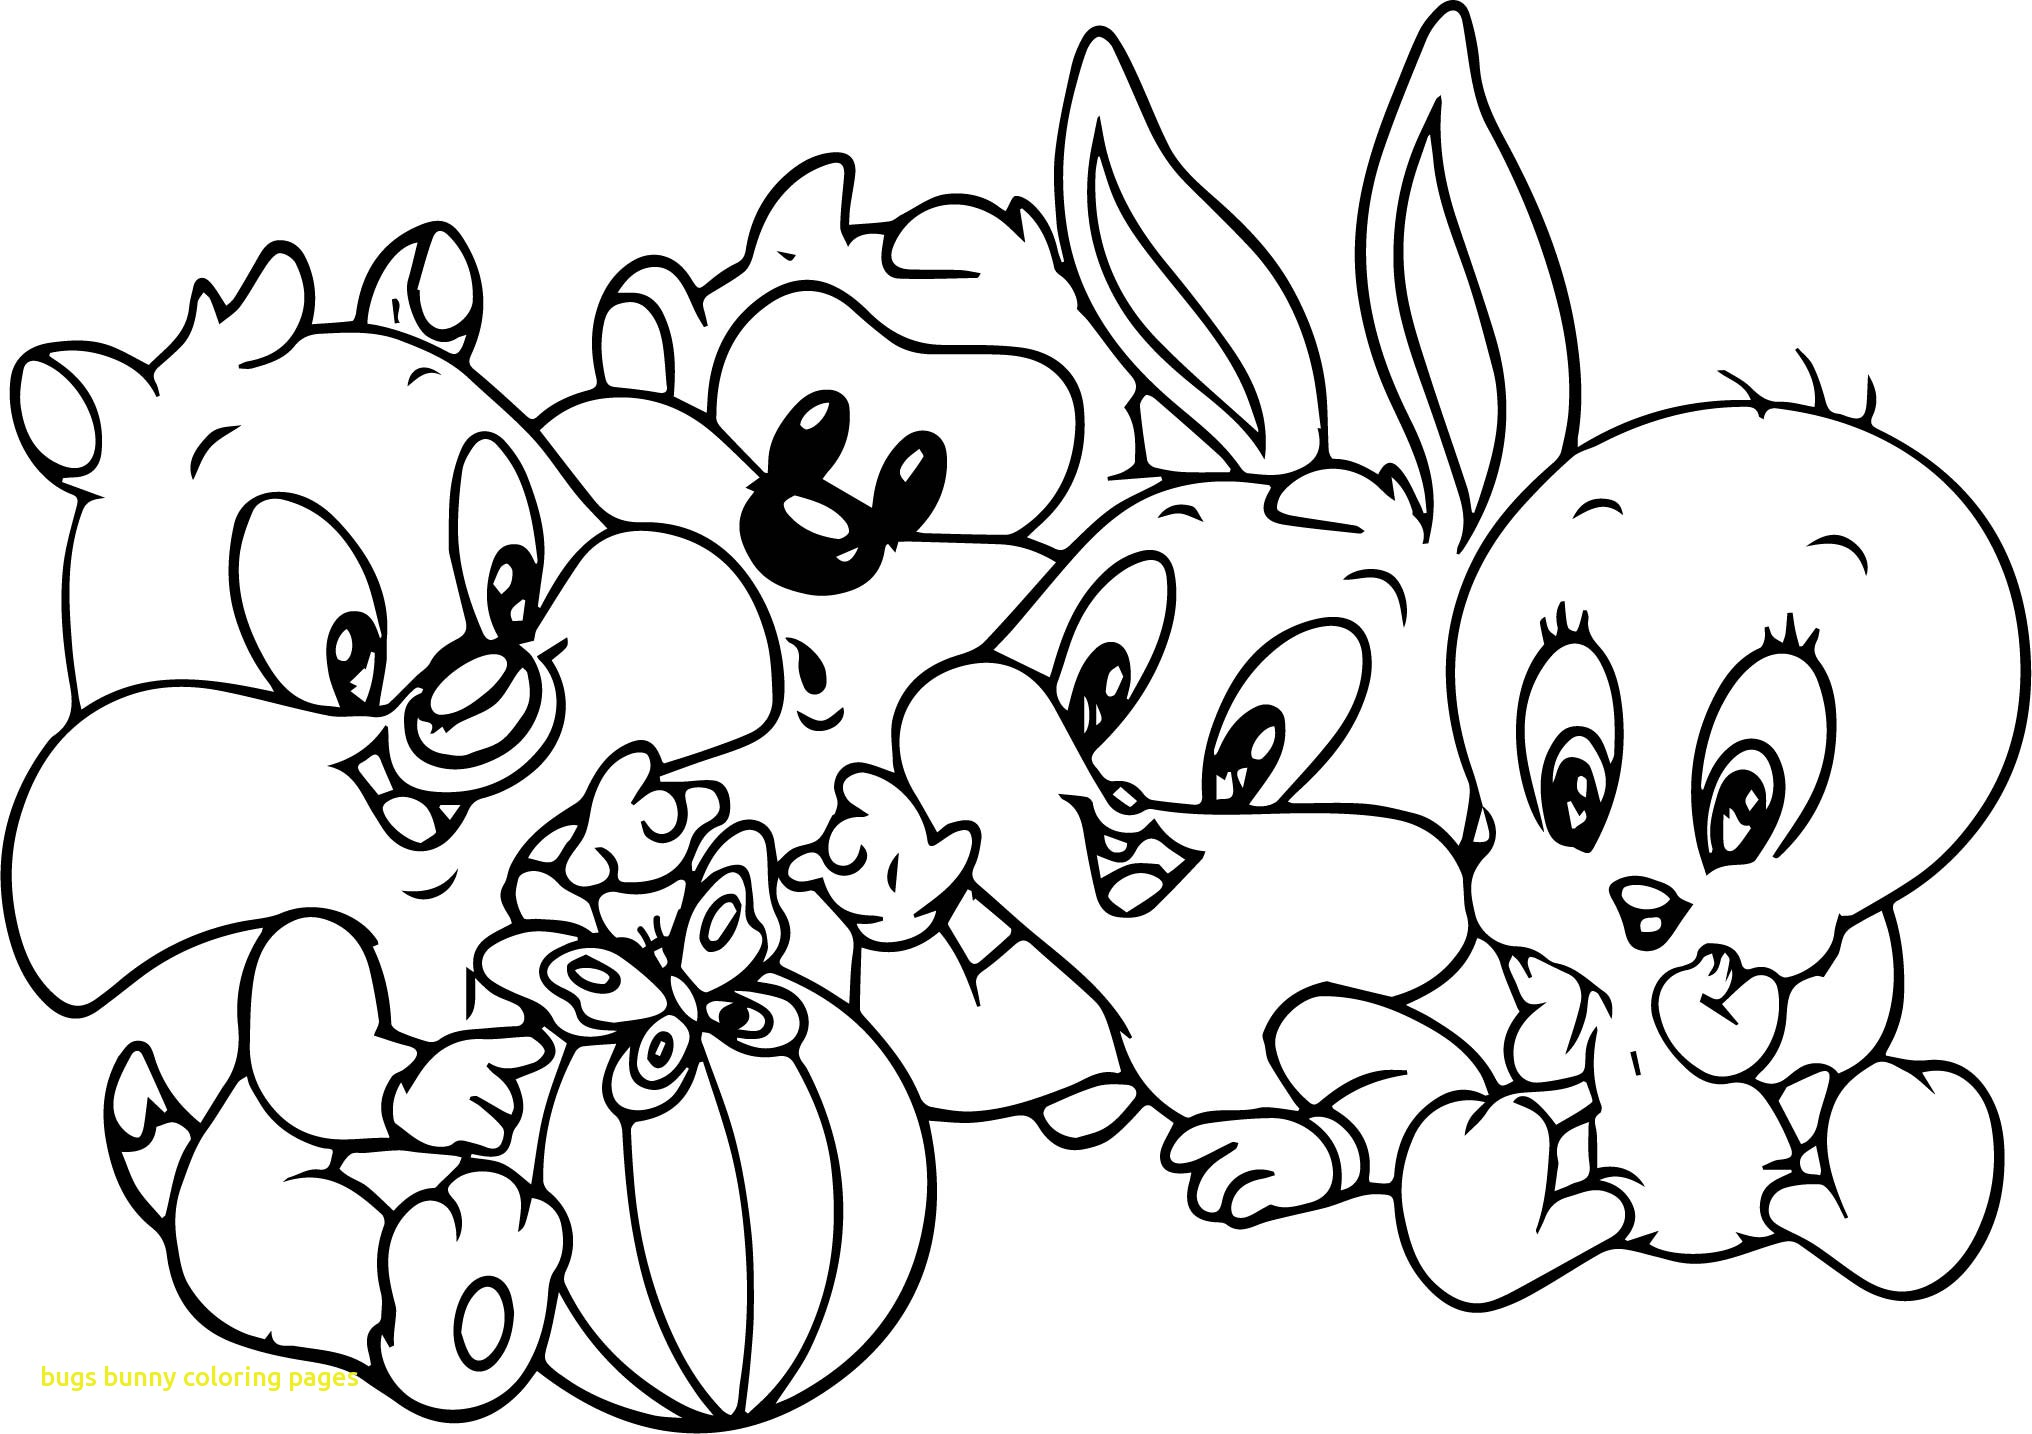 2032x1434 Bugs Bunny Coloring Pages Coloringpageforkidsco